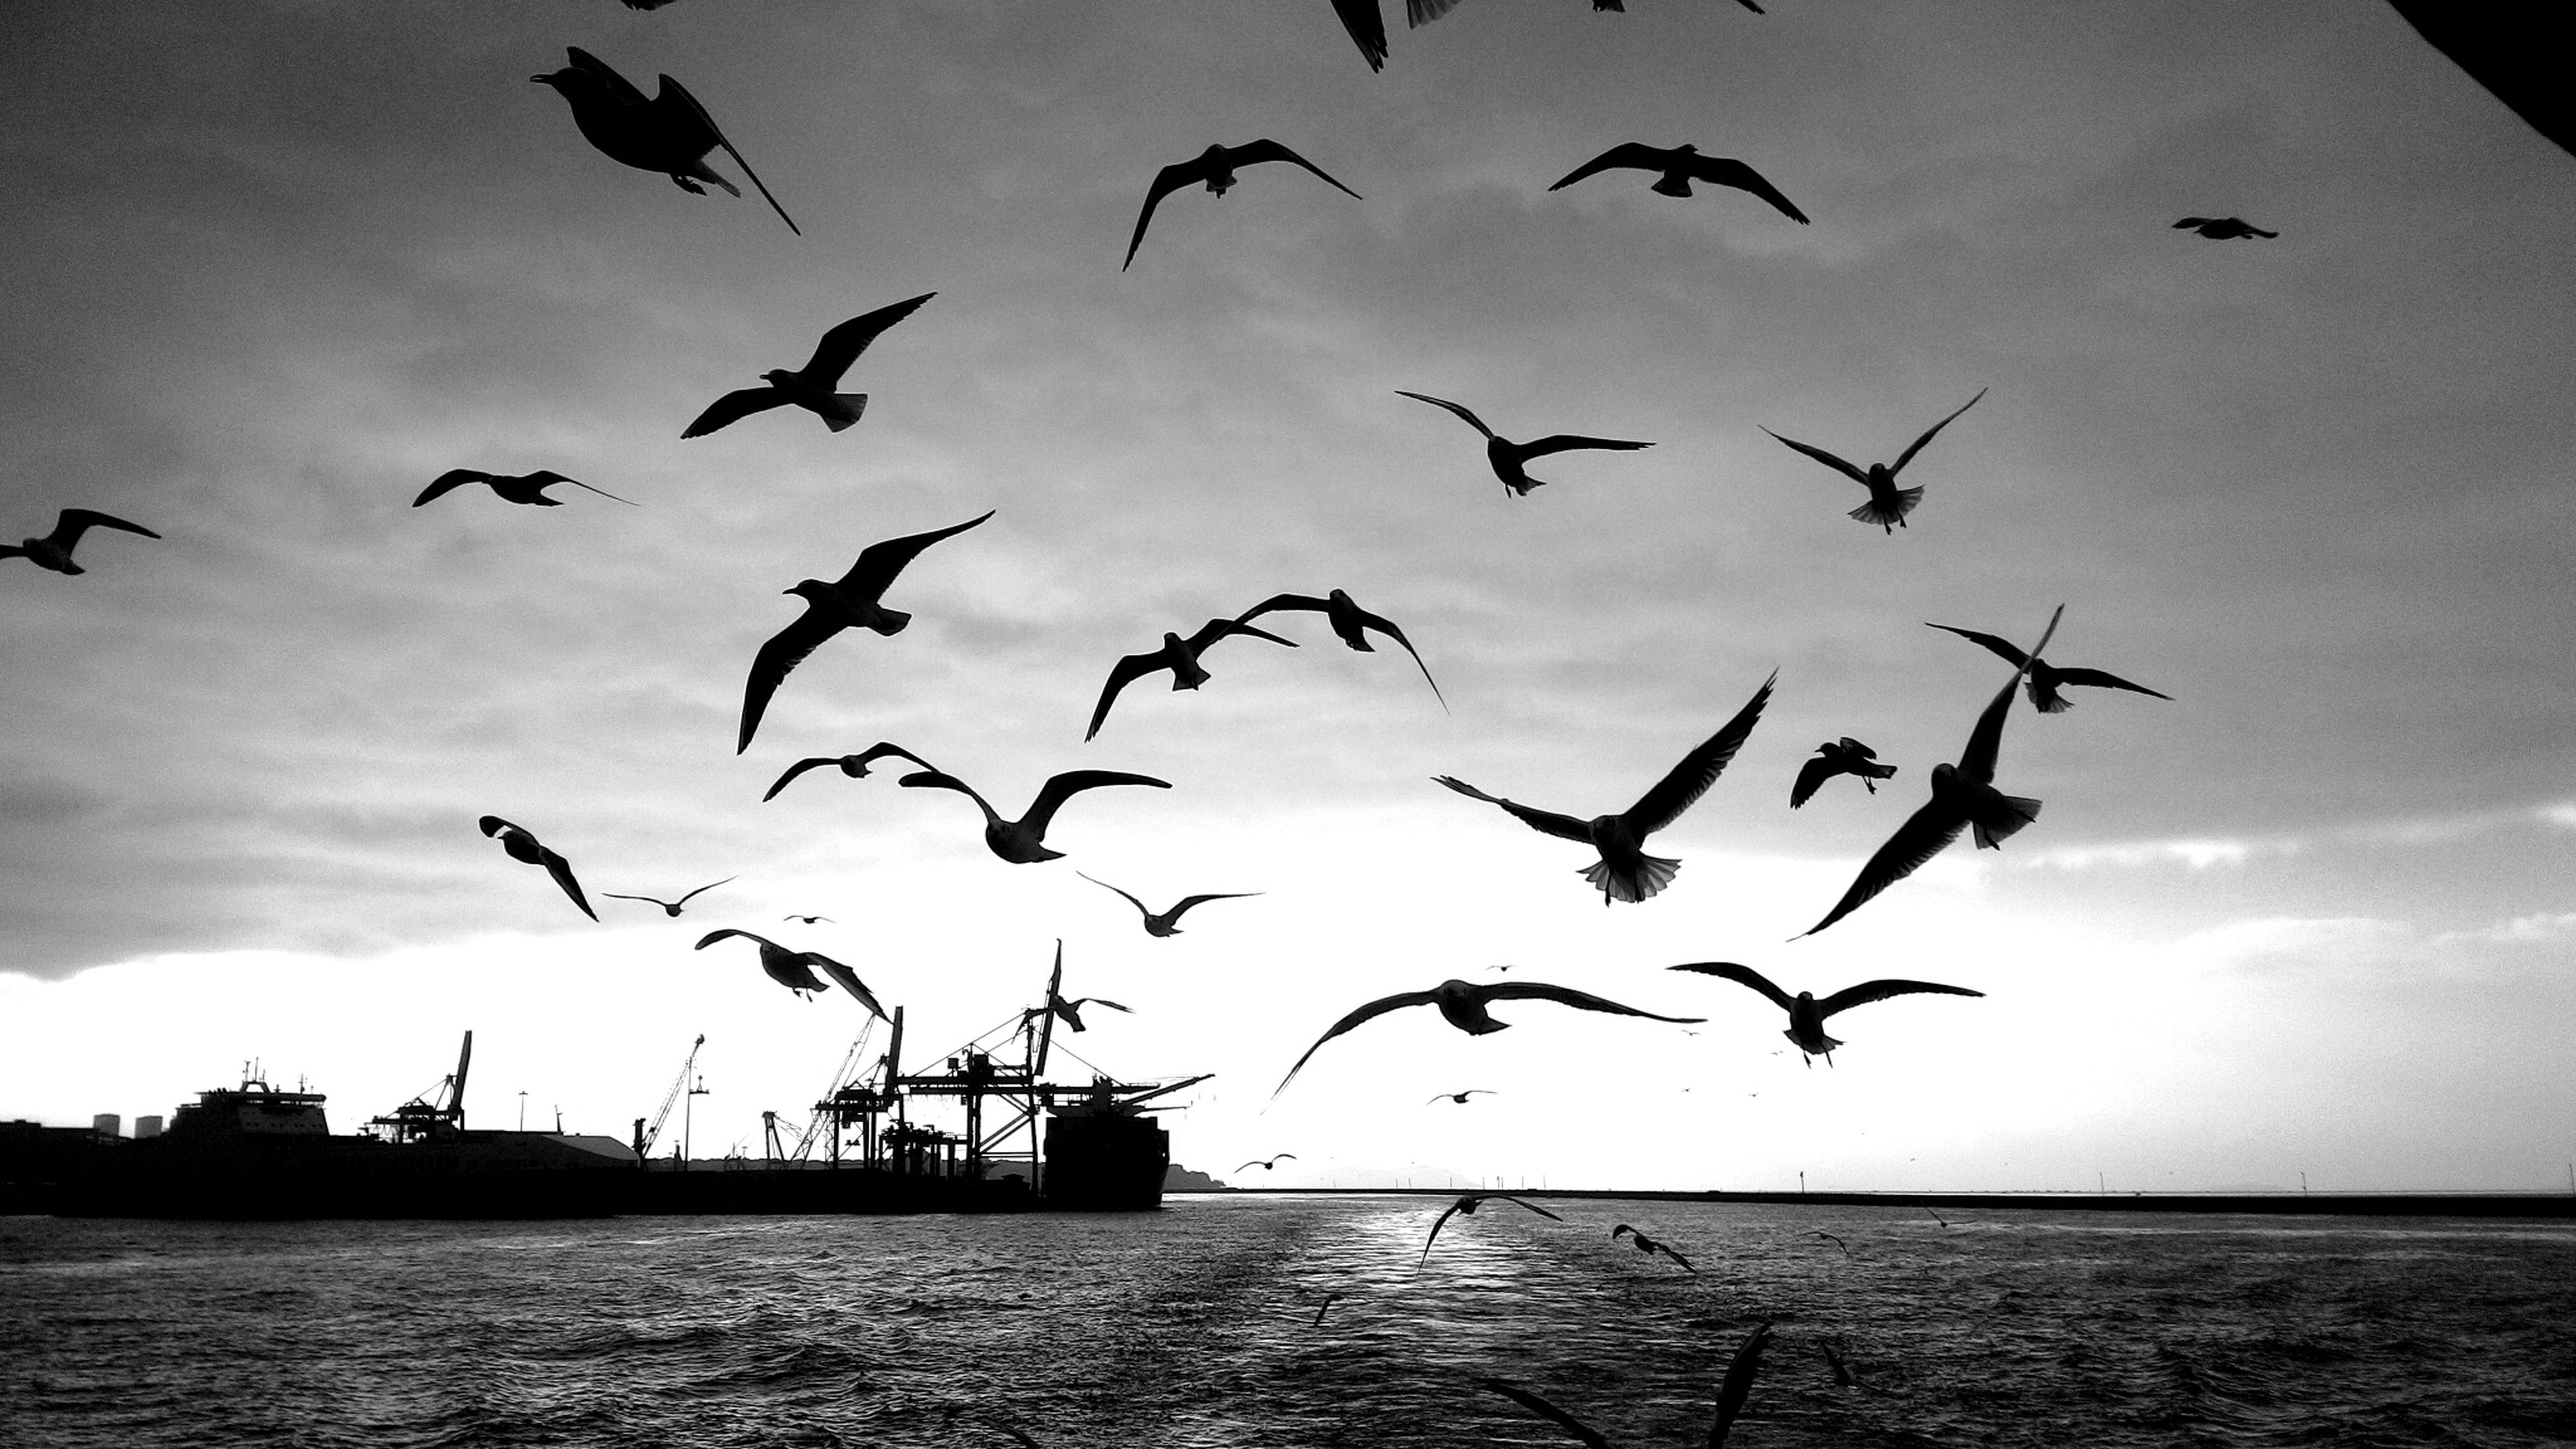 bird, flying, animal themes, animals in the wild, flock of birds, wildlife, water, sea, sky, seagull, spread wings, waterfront, mid-air, horizon over water, nature, silhouette, medium group of animals, cloud - sky, outdoors